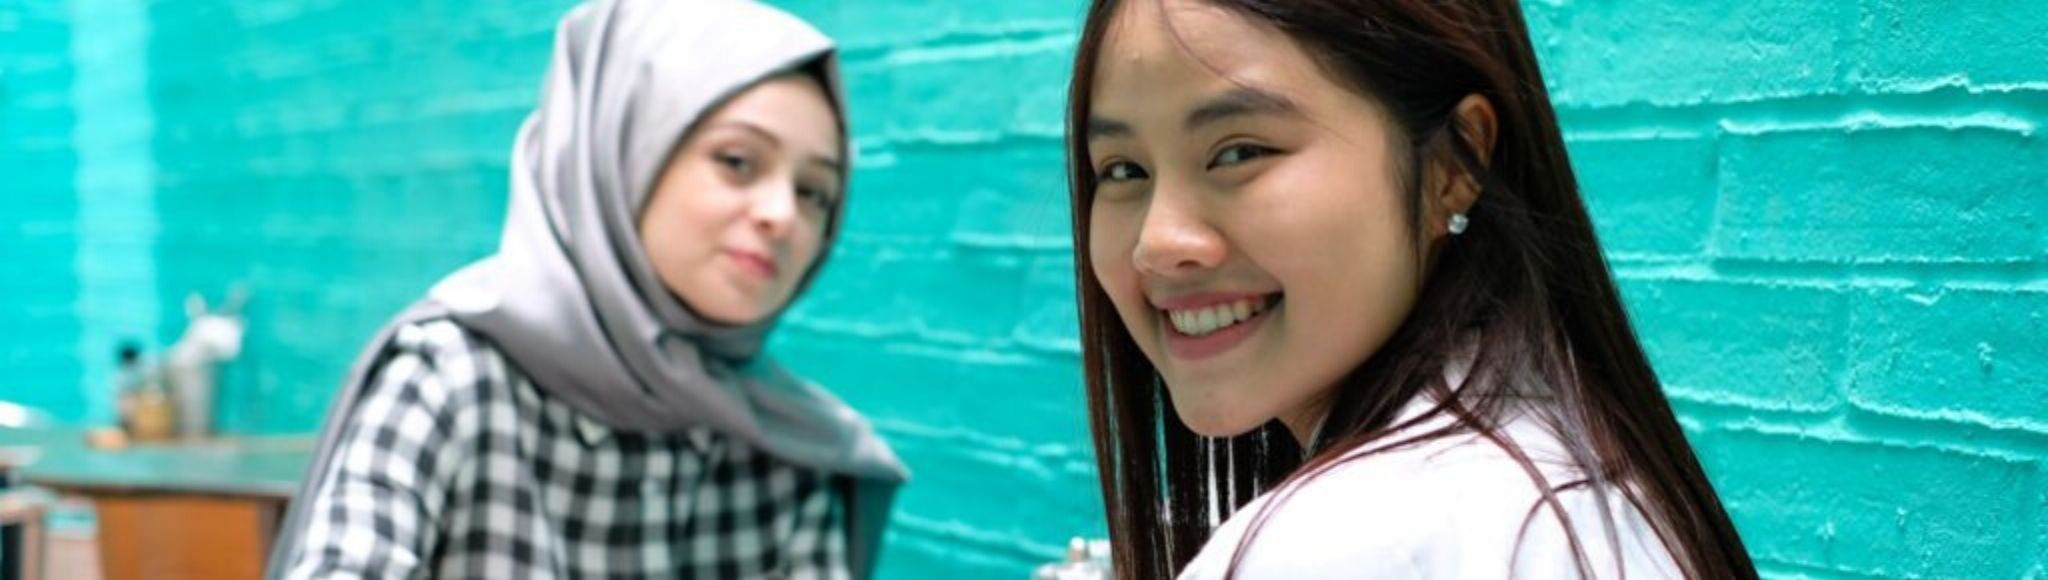 two students smiling at the camera